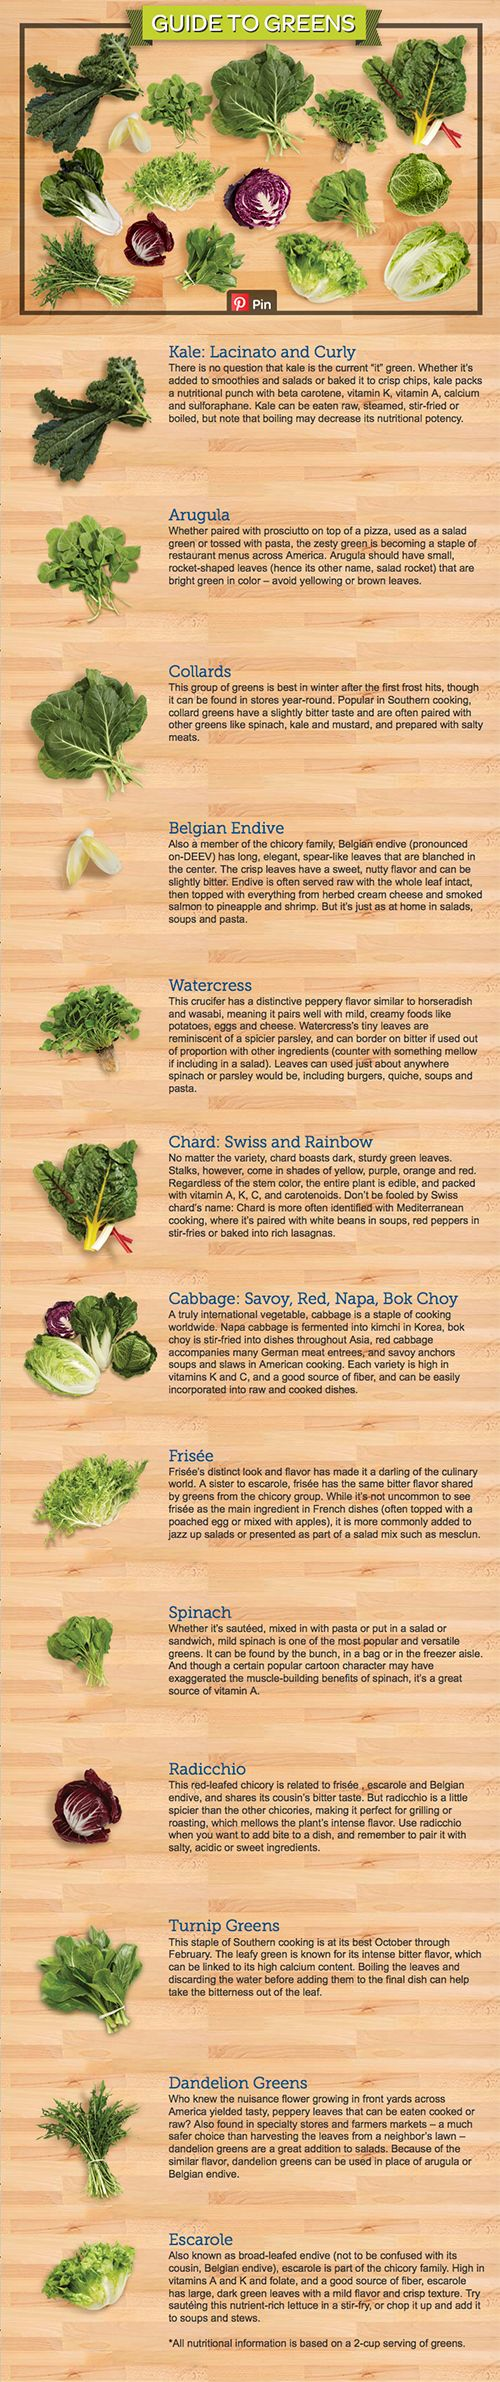 Guide to Greens......Confused by kale? Flustered by frisée? Use this greens cheat sheet to differentiate your farmers market finds and learn the nutritional benefits of all those leafy lovelies. If you looking for more clean eating recipes check out-> yummspiration.com We have some Vegan & Raw recipes too :) We are also on facebook.com/yummspiration